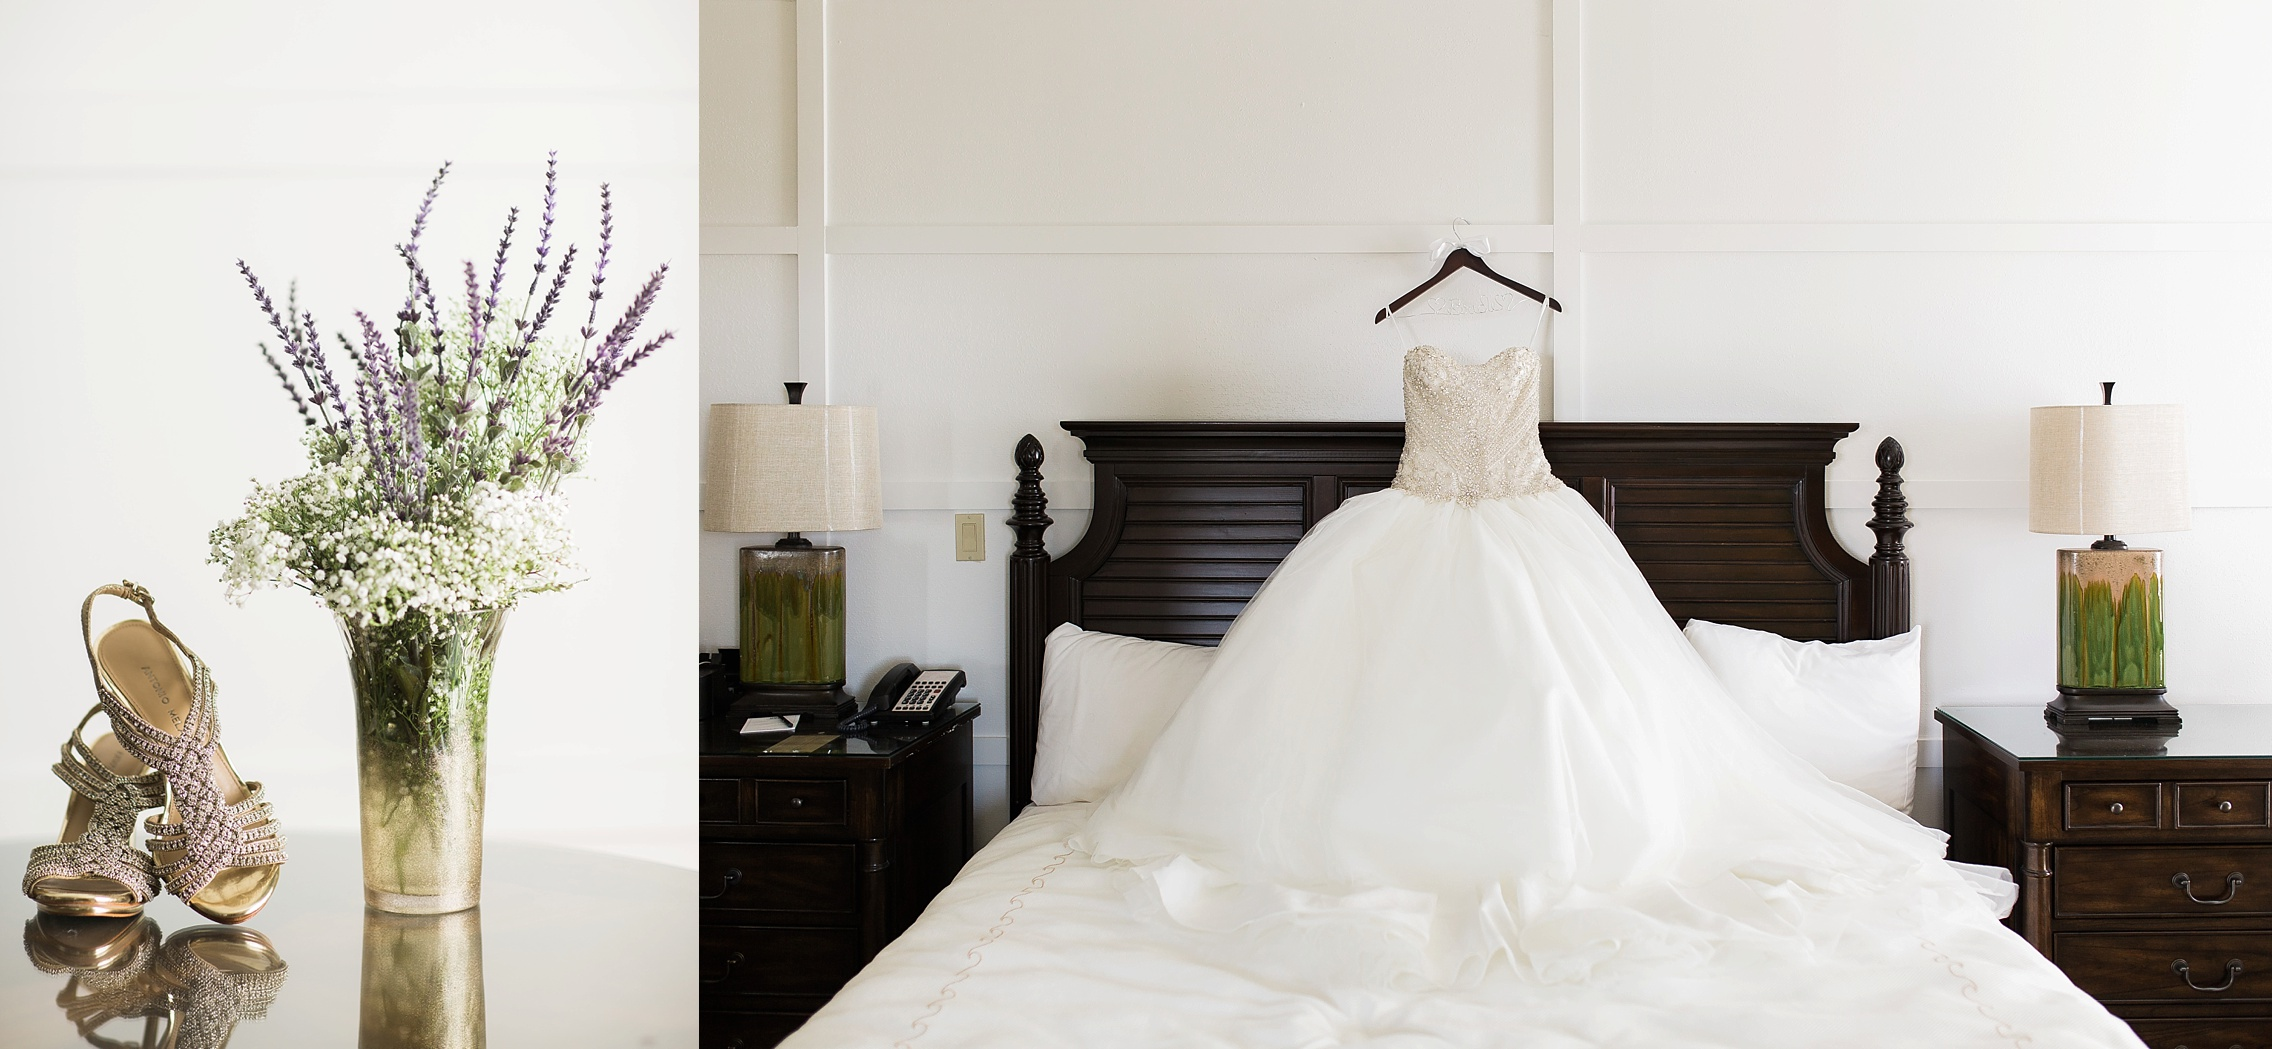 Maxwell Room Ft Lauderdale Wedding Photography